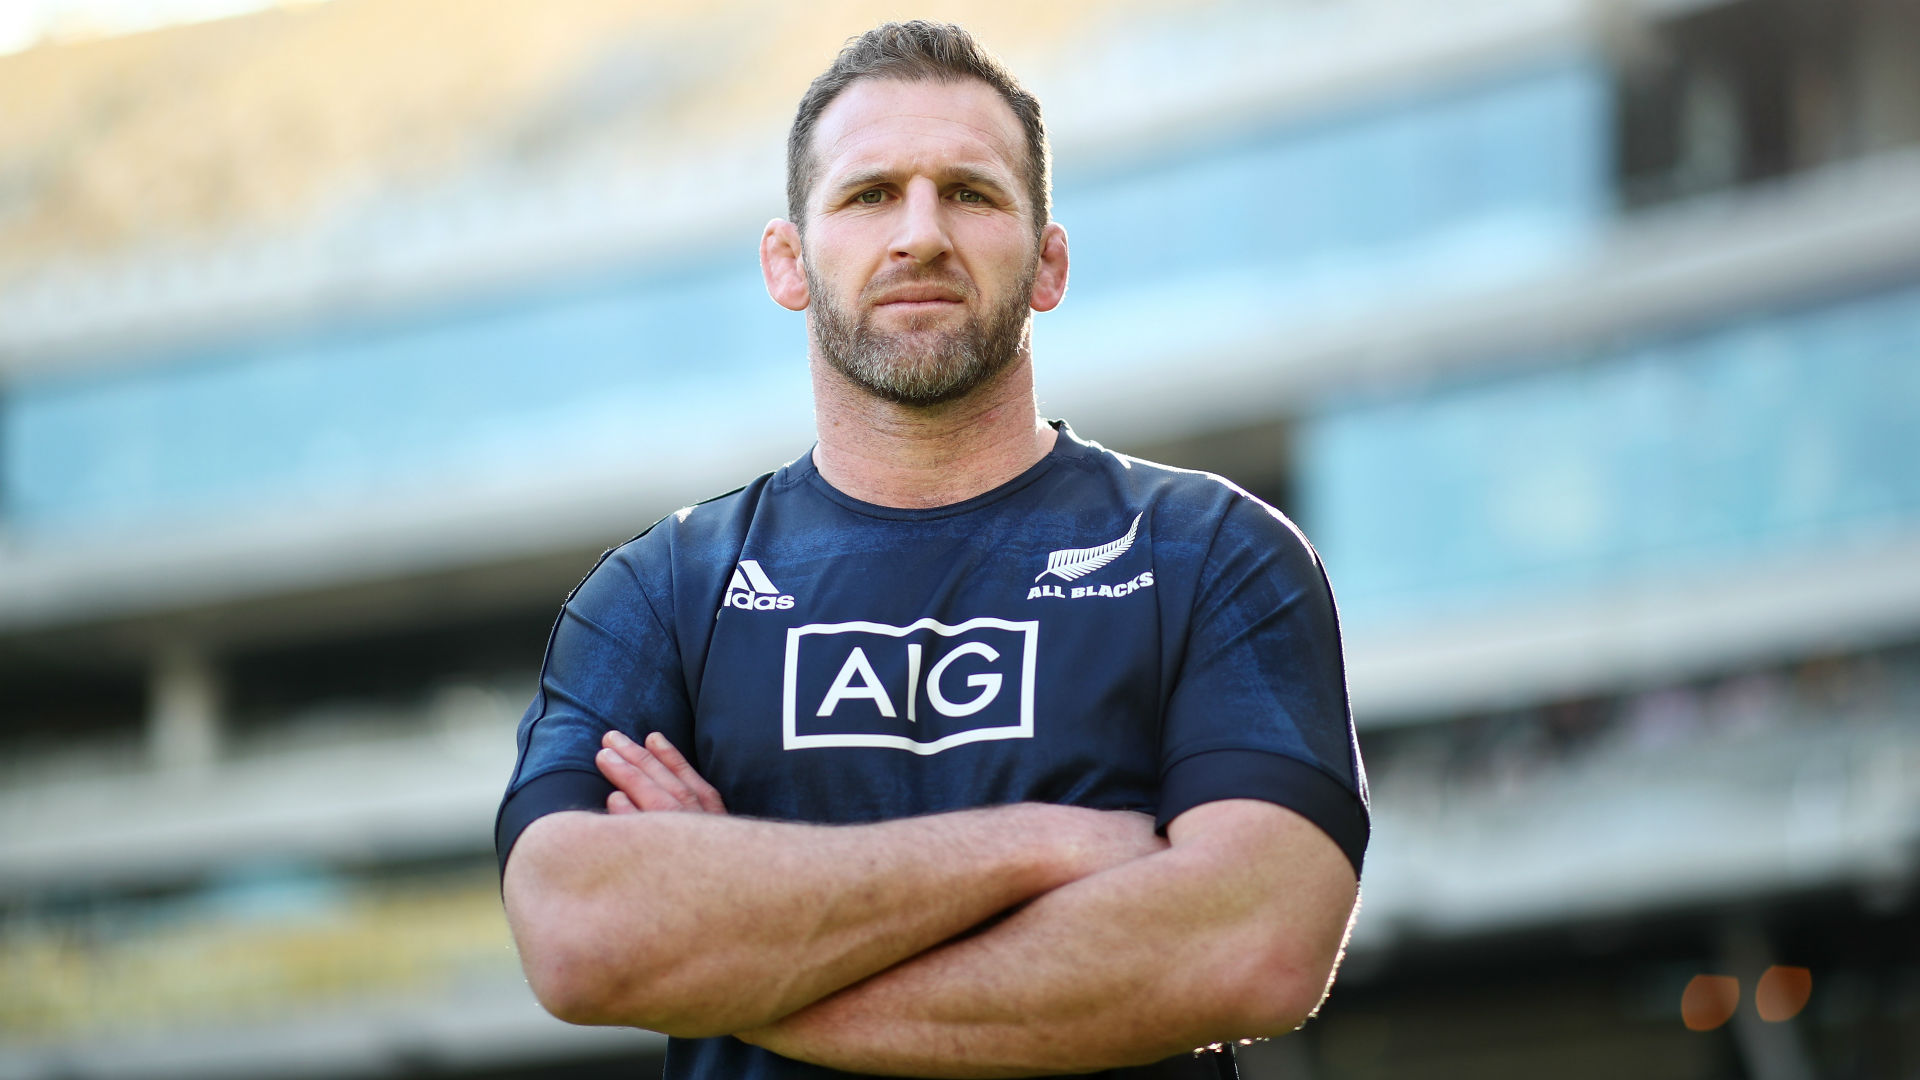 Rugby World Cup 2019: All Blacks name strongest side for Ireland quarter-final